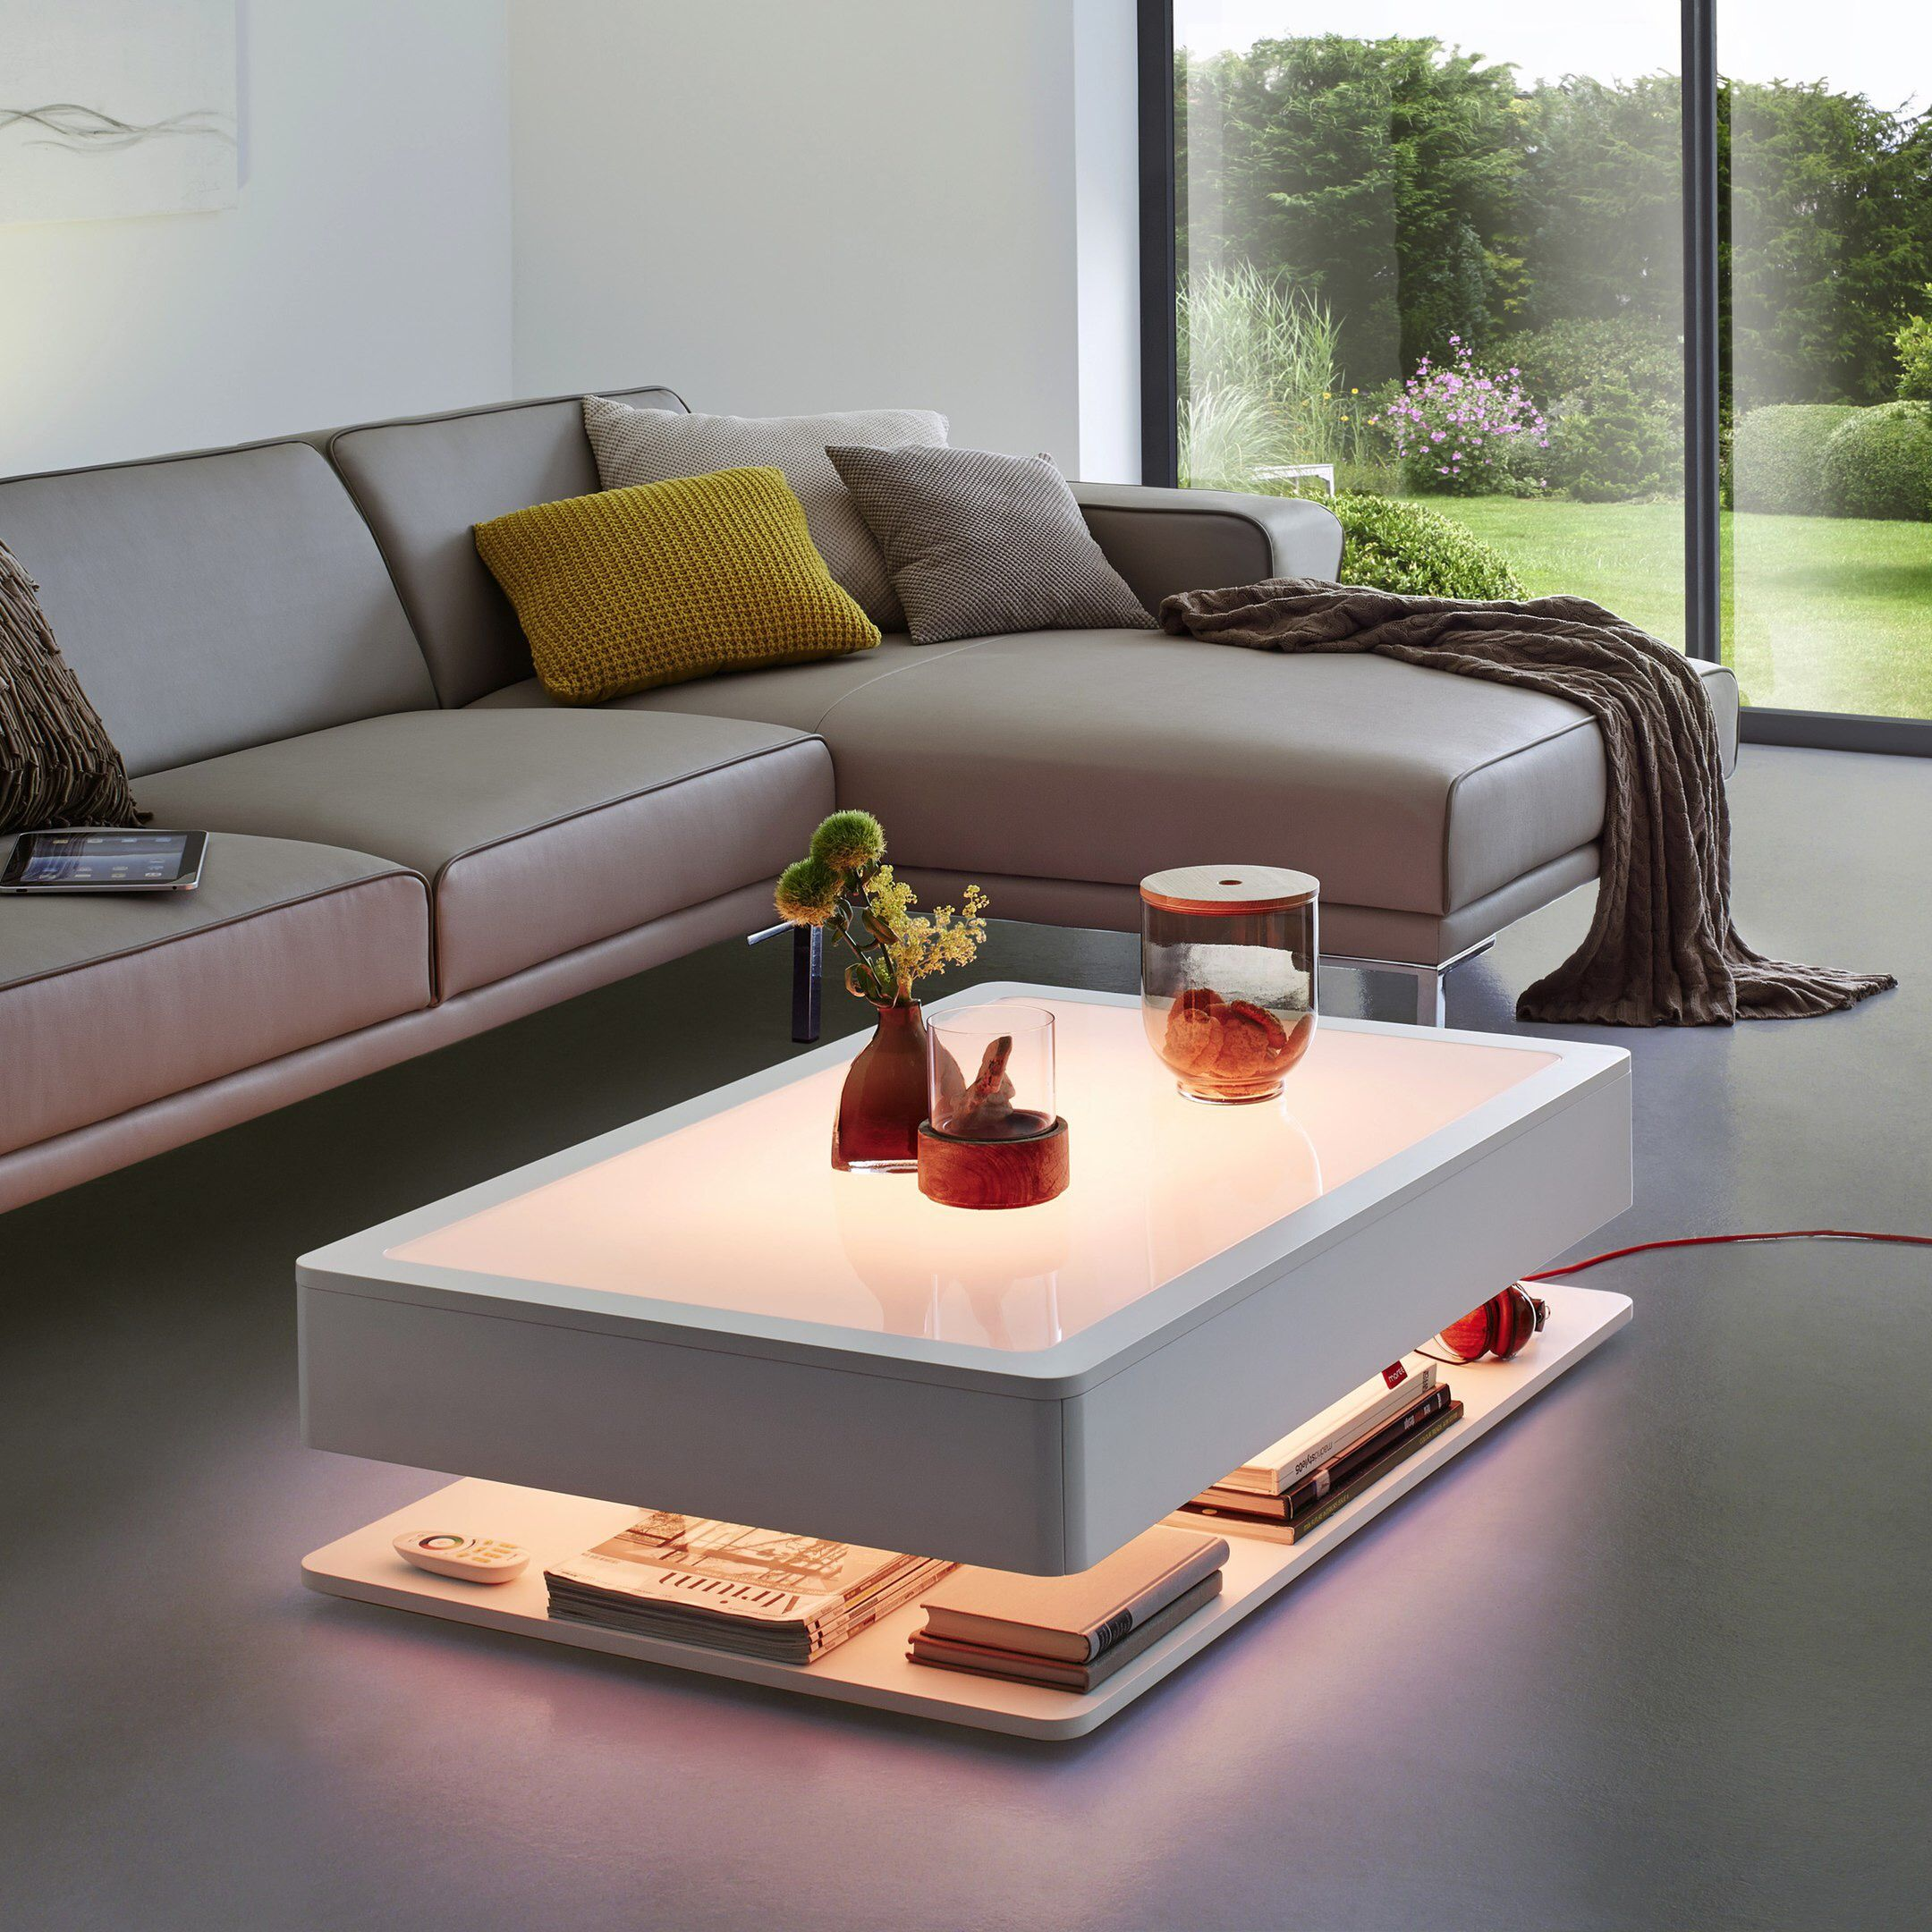 Design Couchtisch Led Pin By Amit Somvanshi On Mid Century Modern Home Coffee Tables